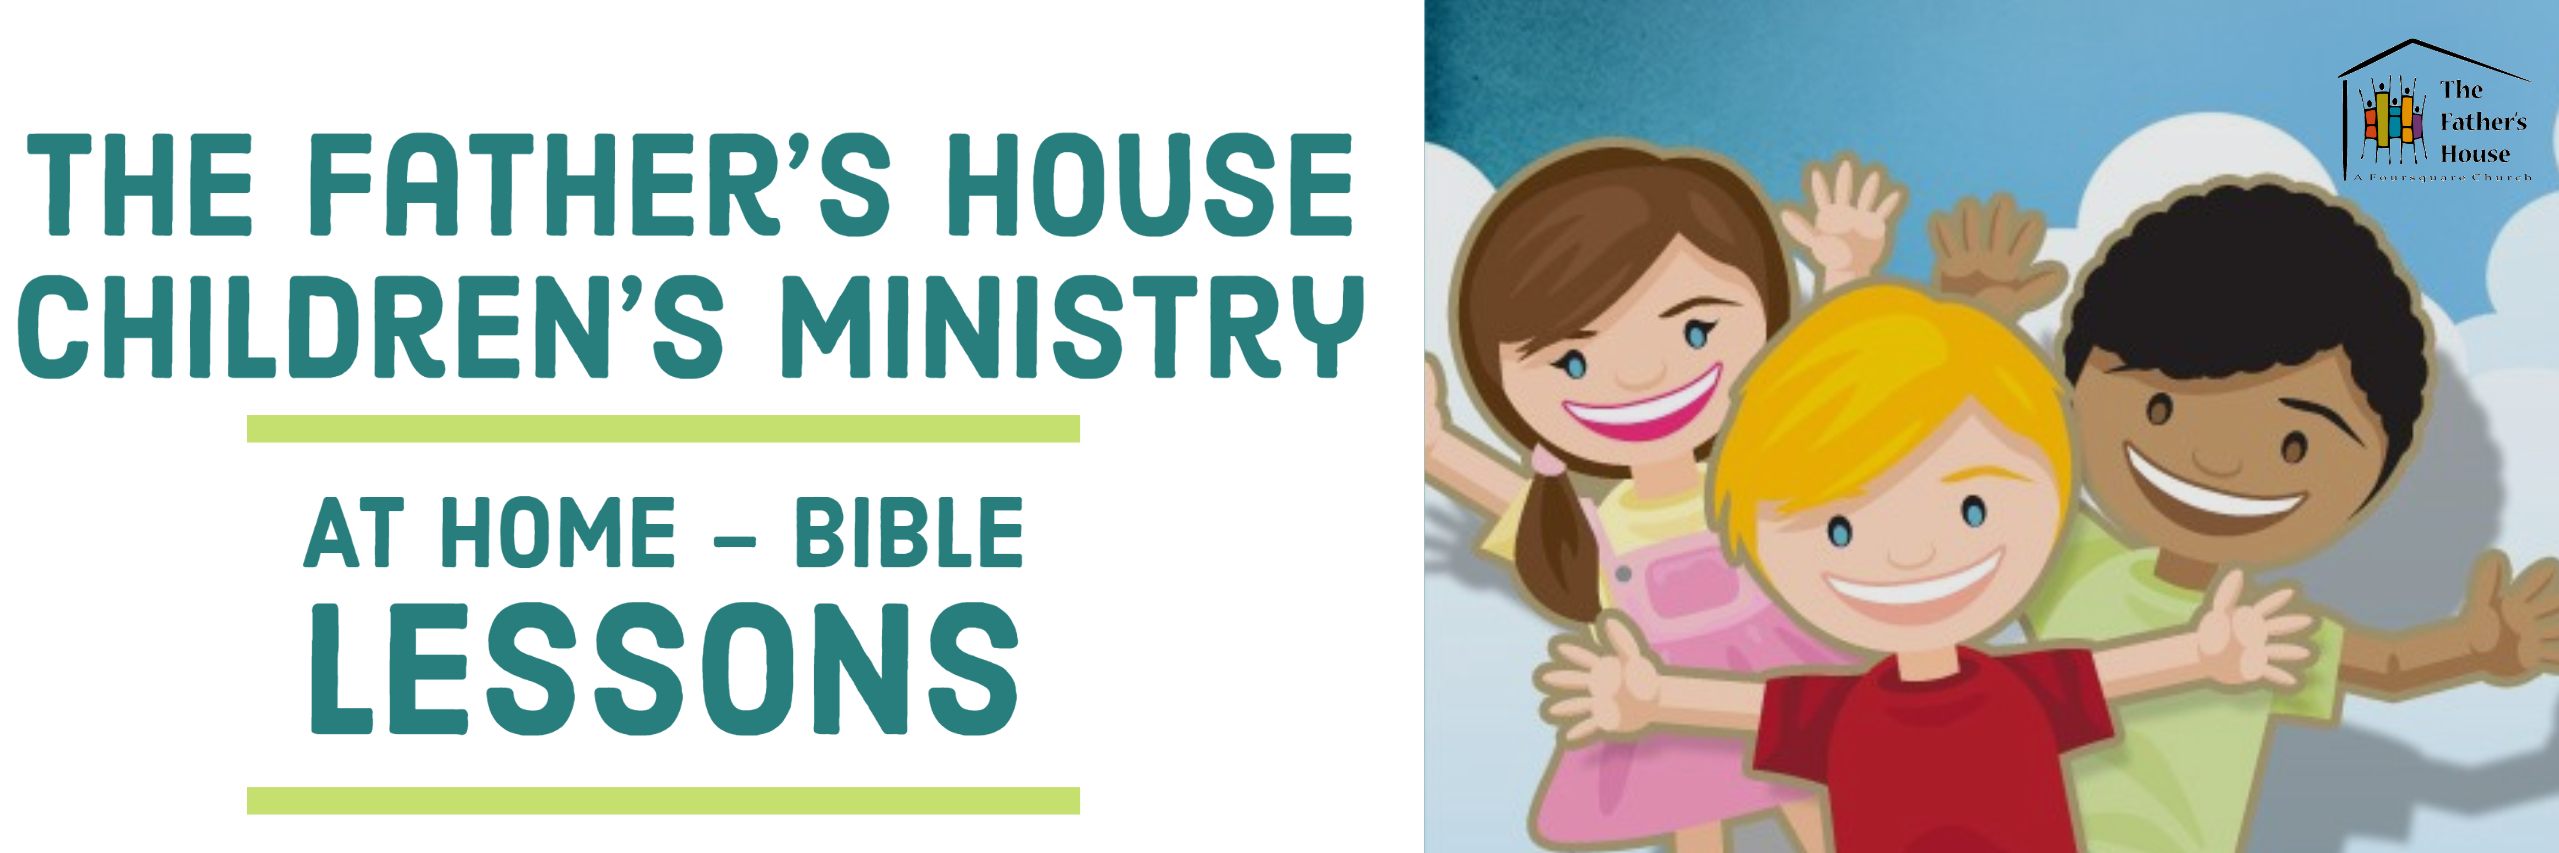 Children's Ministry At Home Lessons Banner